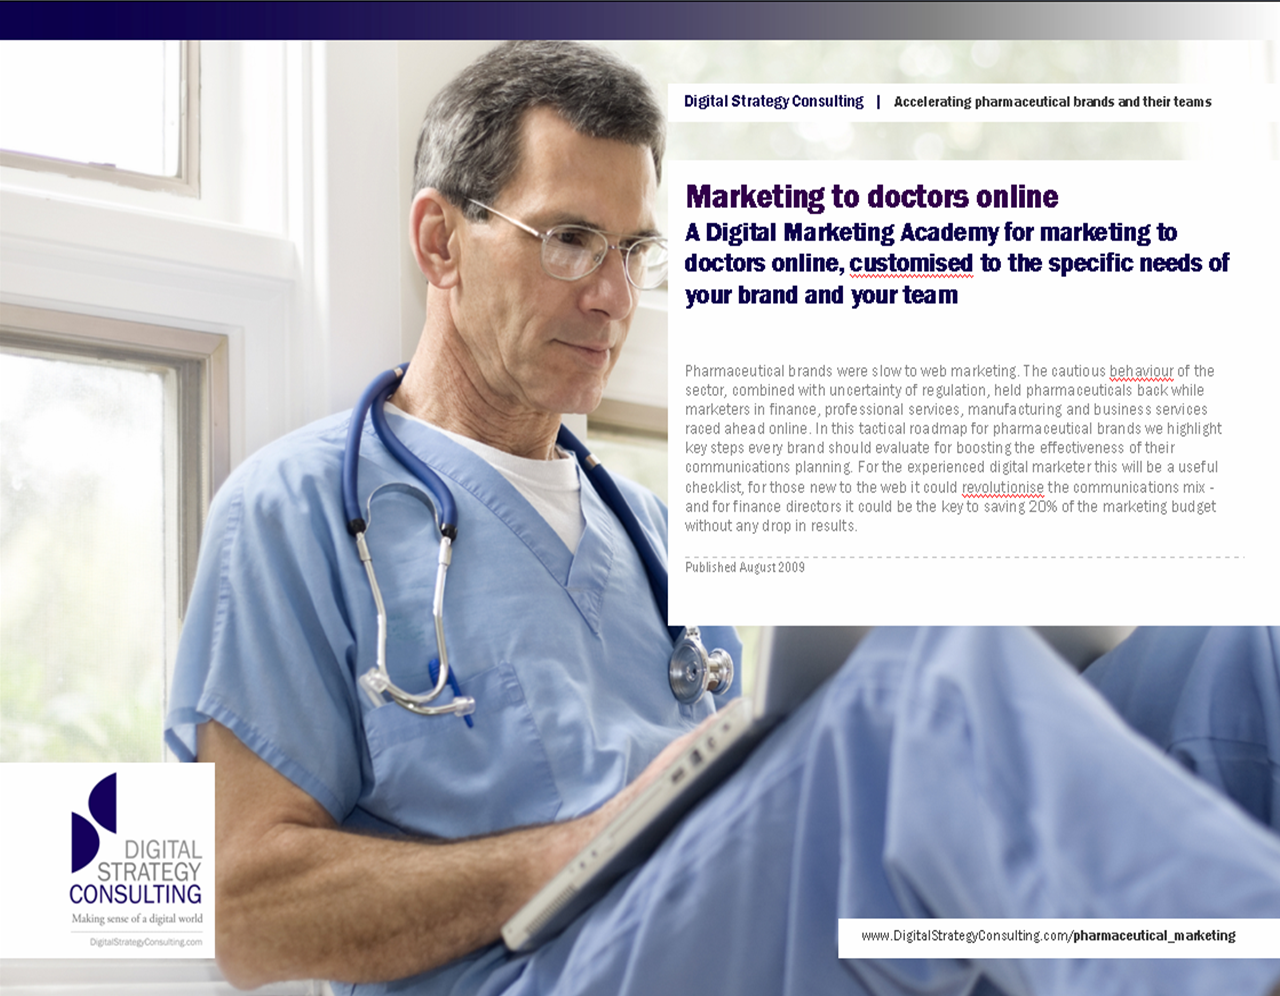 marketingtodoctors.png